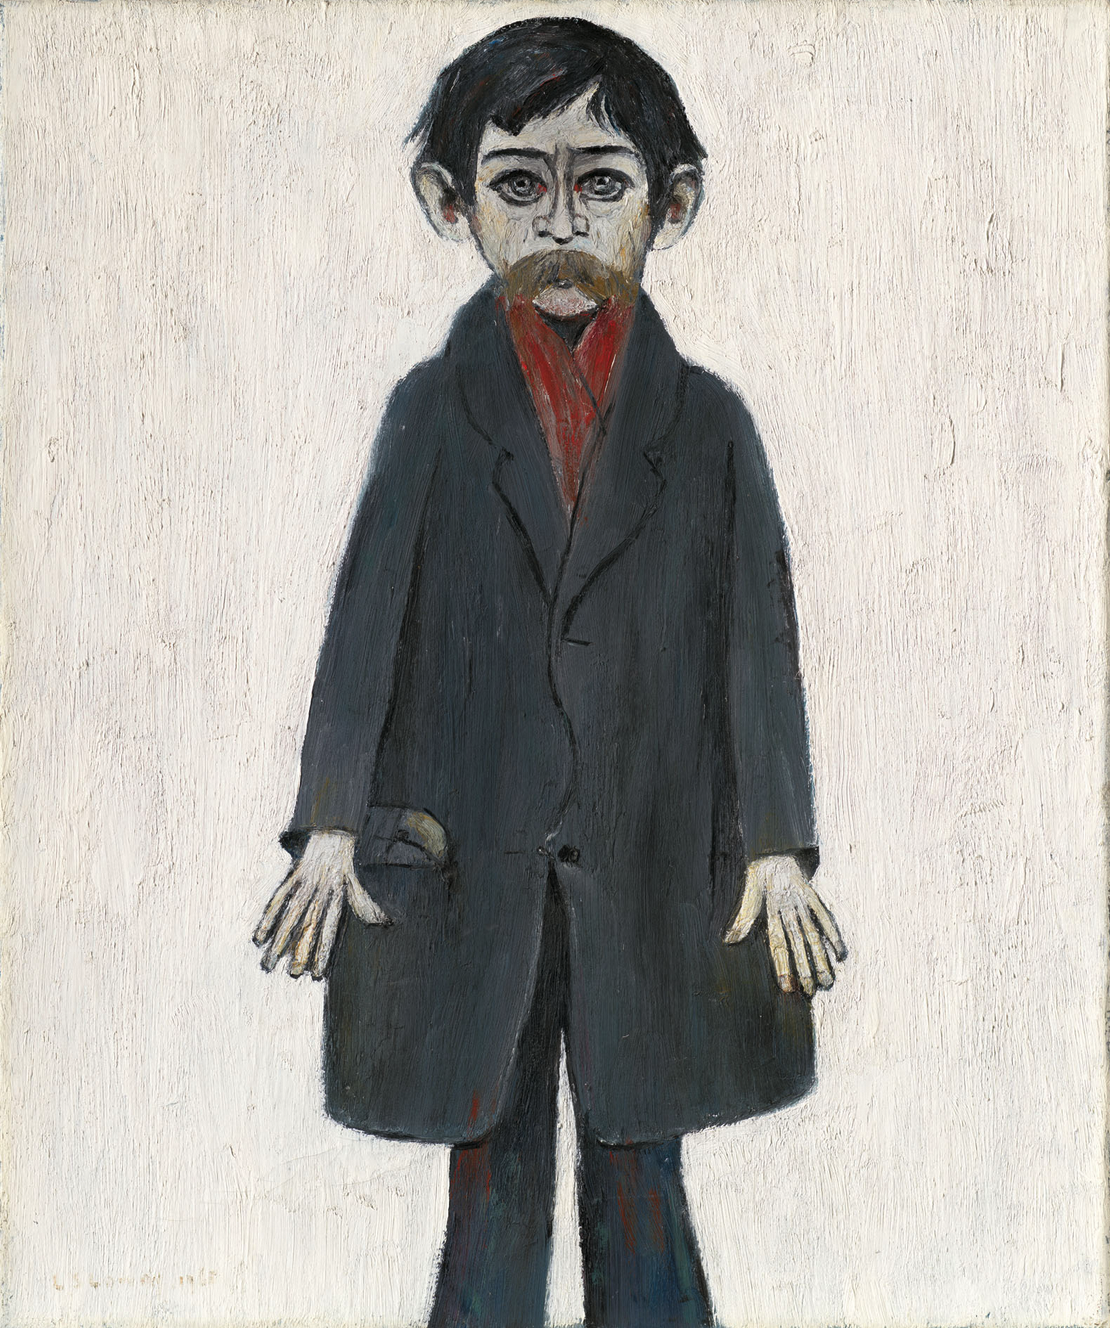 Man with Red Scarf (1963) by Laurence Stephen Lowry (1887 - 1976), English artist.